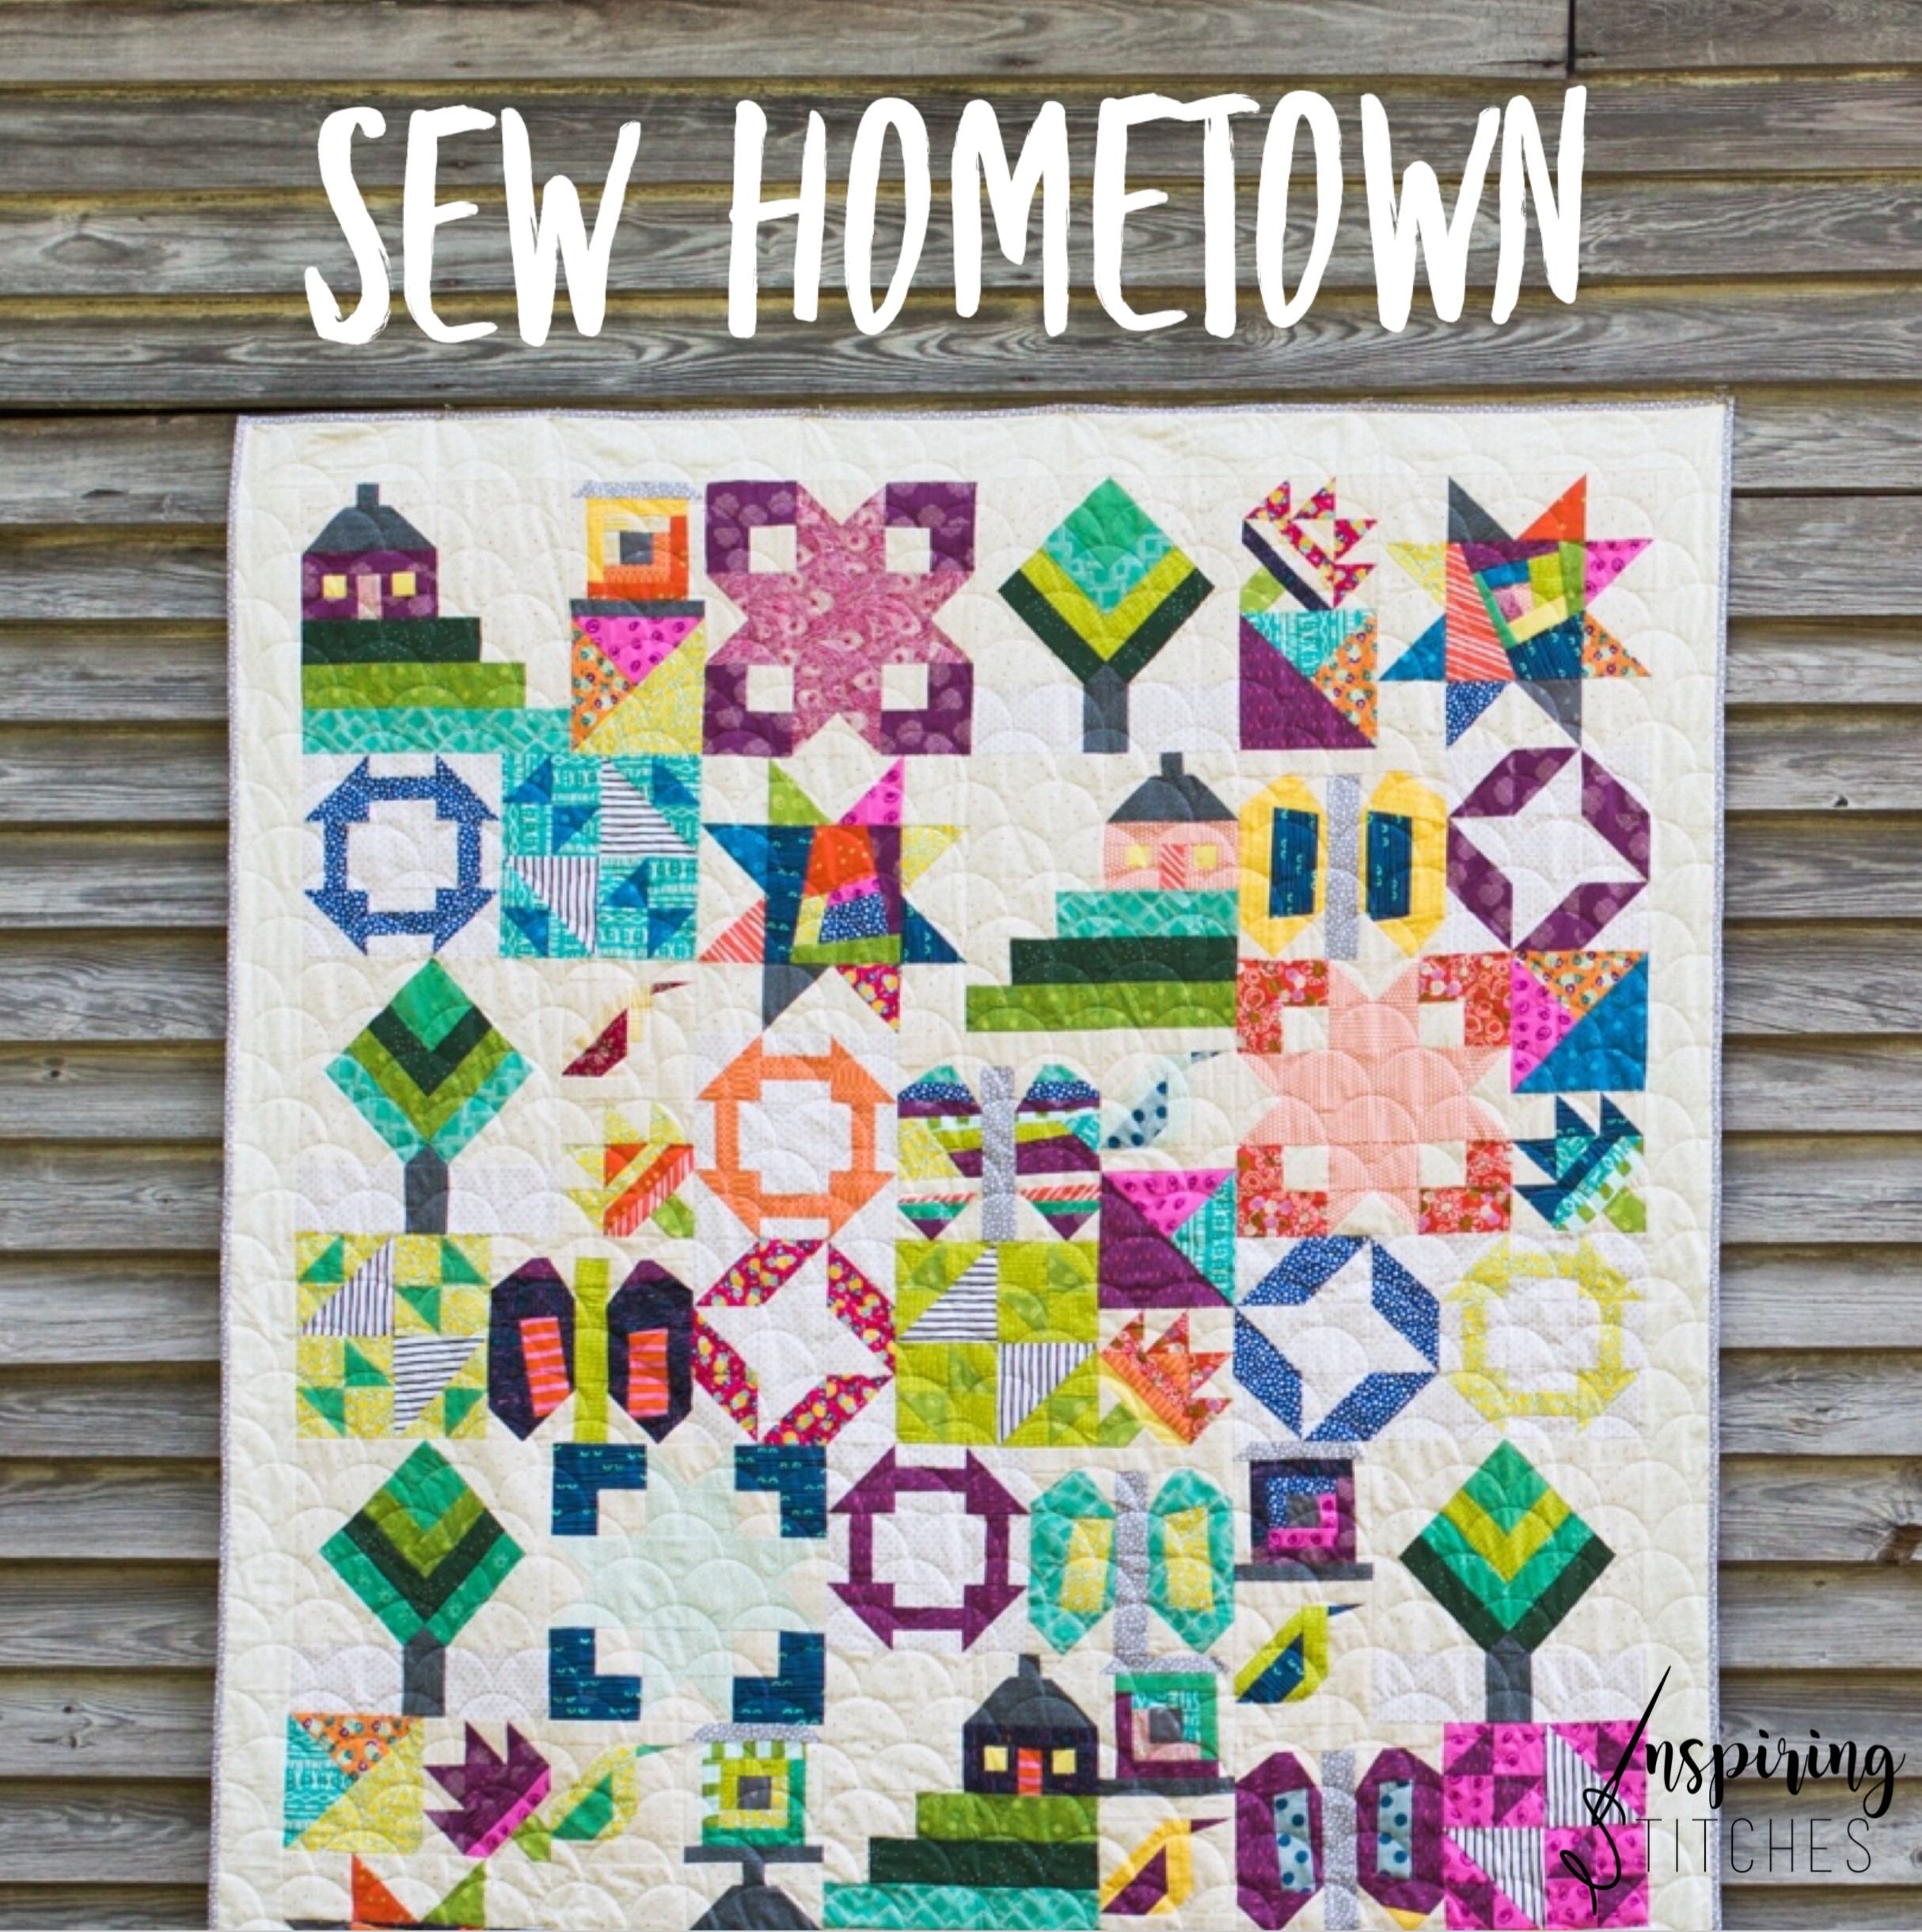 Sew Hometown by Inspiring Stitches